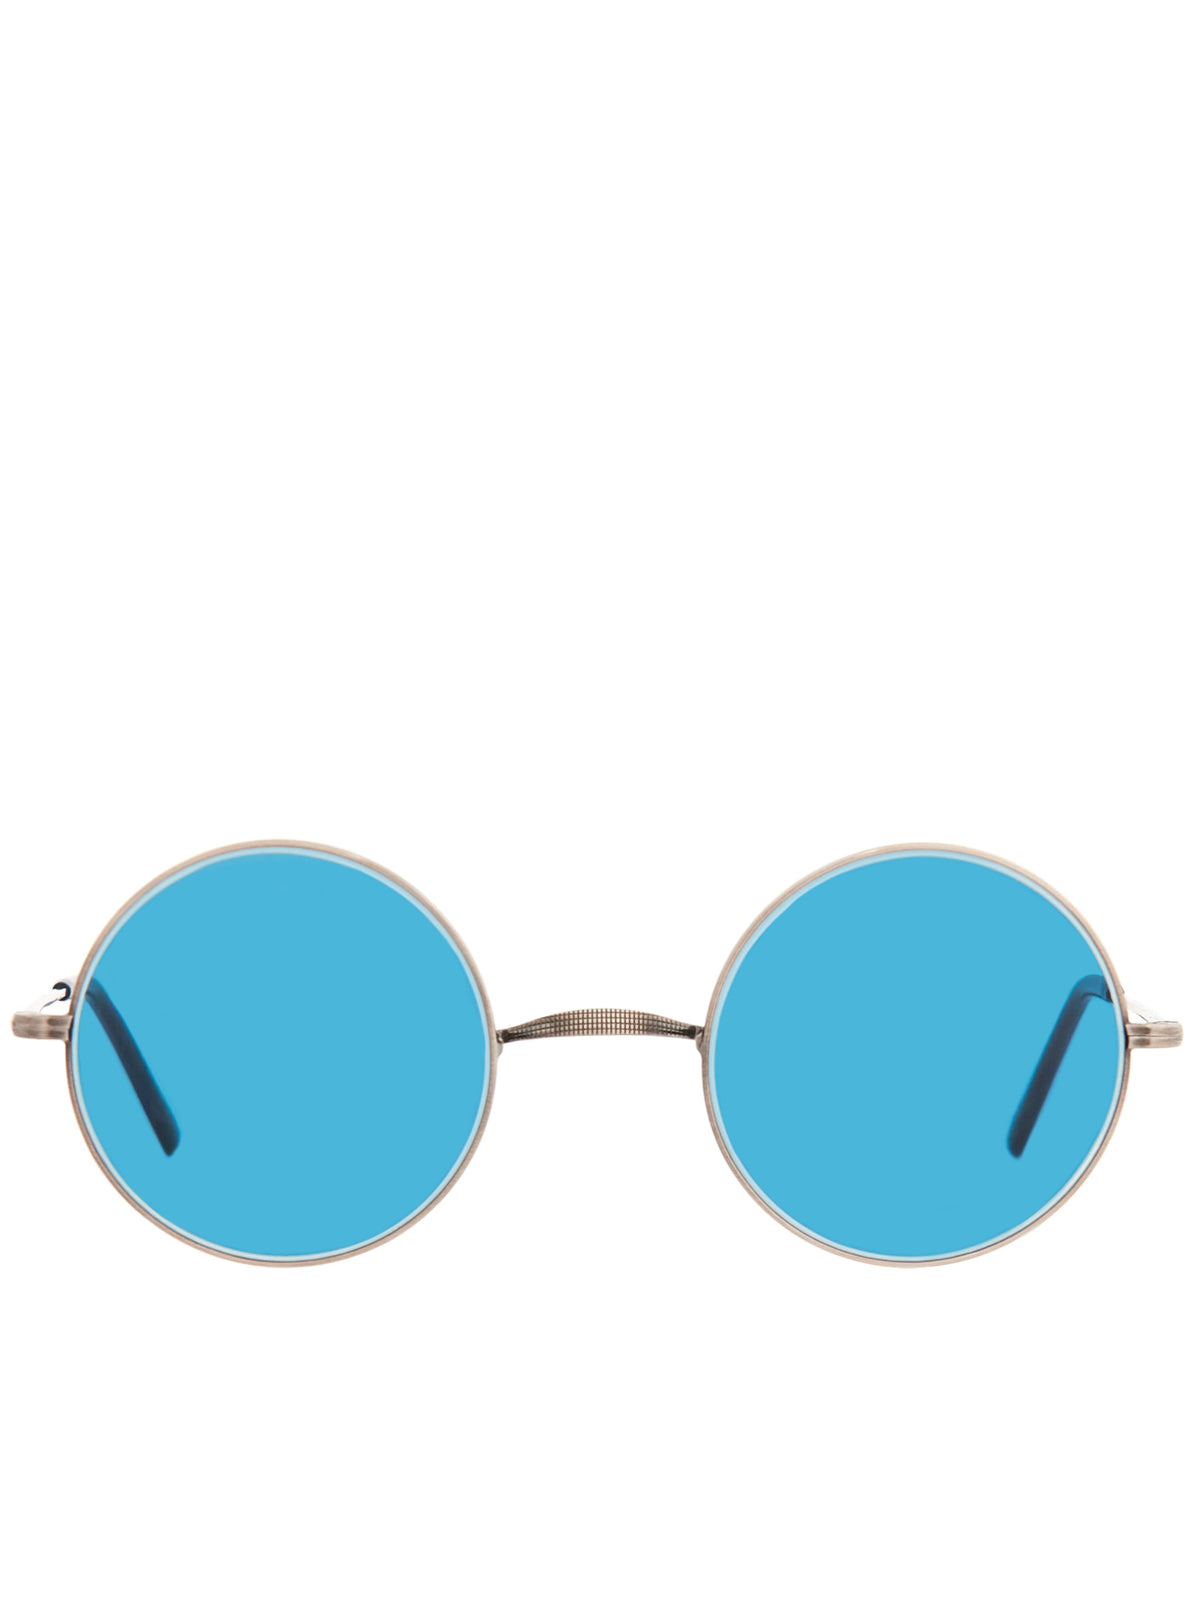 Round Sunglasses (SPM-CLASSIC-AS-HE-BLUEGREEN4)